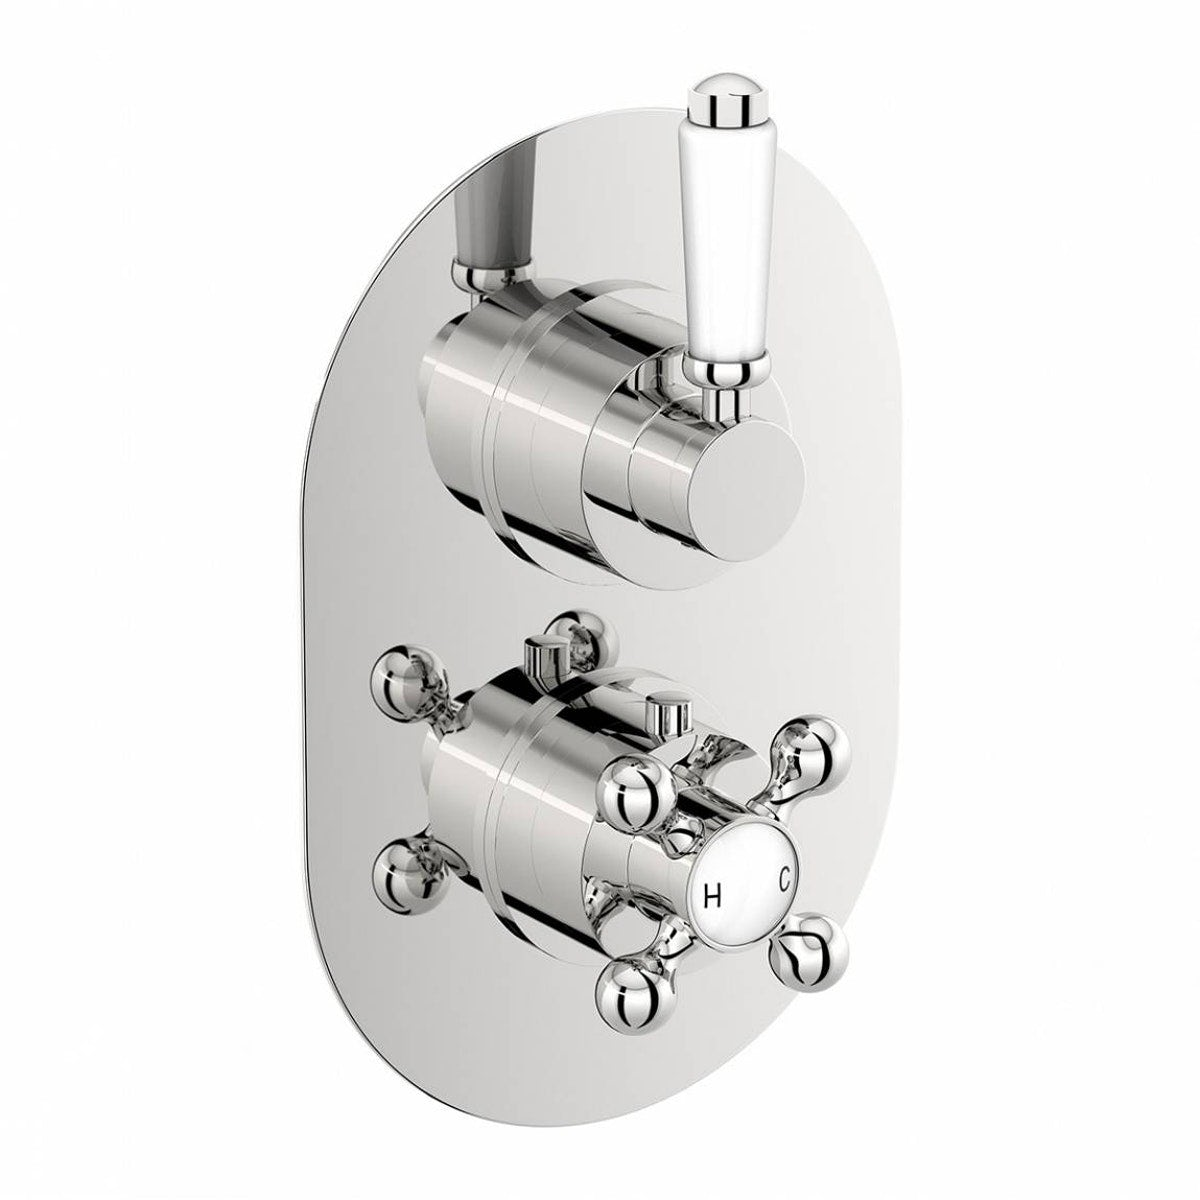 The Bath Co. Traditional oval twin thermostatic shower valve with diverter